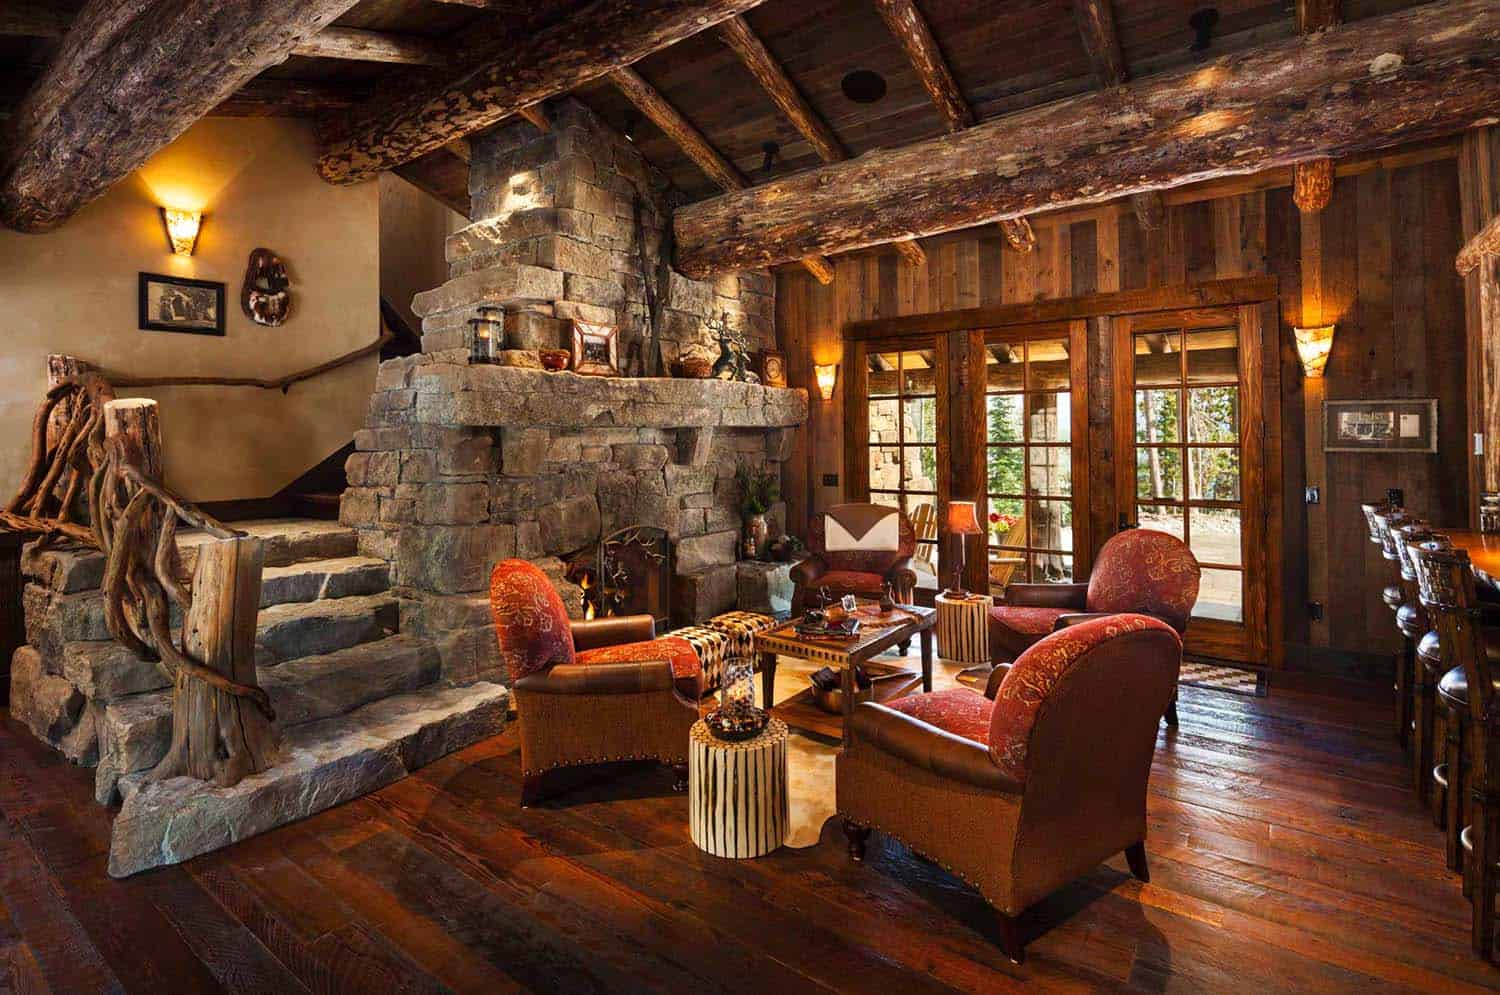 Rustic Log Home Design-Faure Halvorsen Architects-09-1 Kindesign